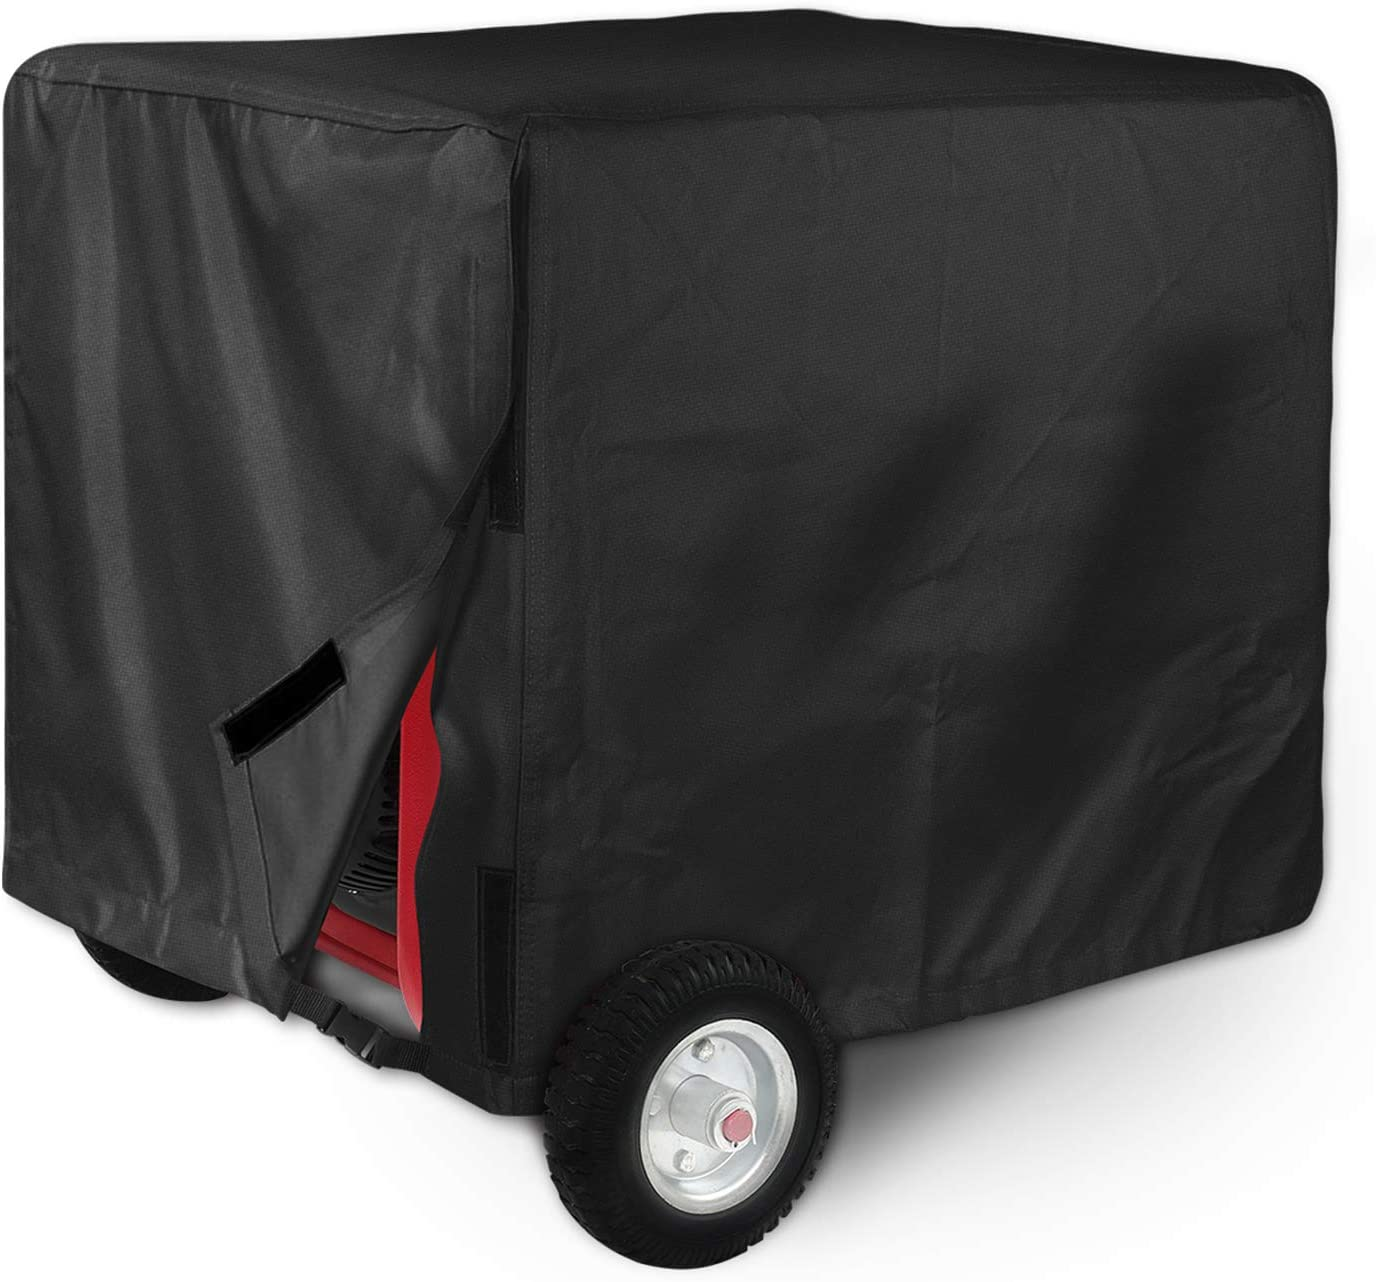 Leader Accessories Durable Universal Max 81% OFF Generator NEW before selling ☆ Cover Waterproof